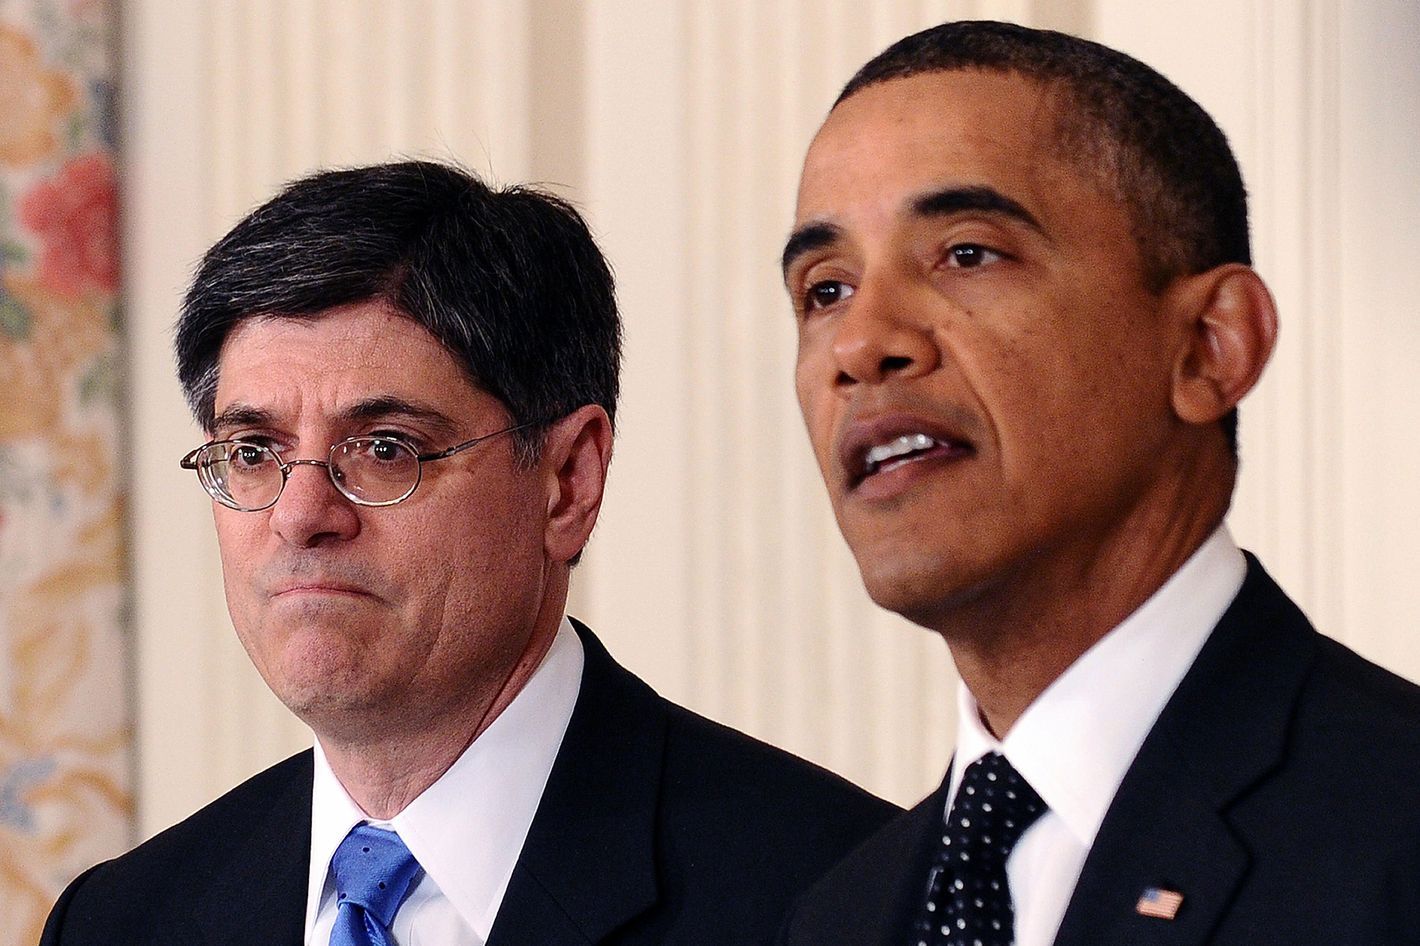 US President Barack Obama (R) speaks to announce change of his chief of staff at the State Dinning Room of the White House in Washington, DC, on January 9, 2012 as his replacement chief of staff Jacob Lew looks on.